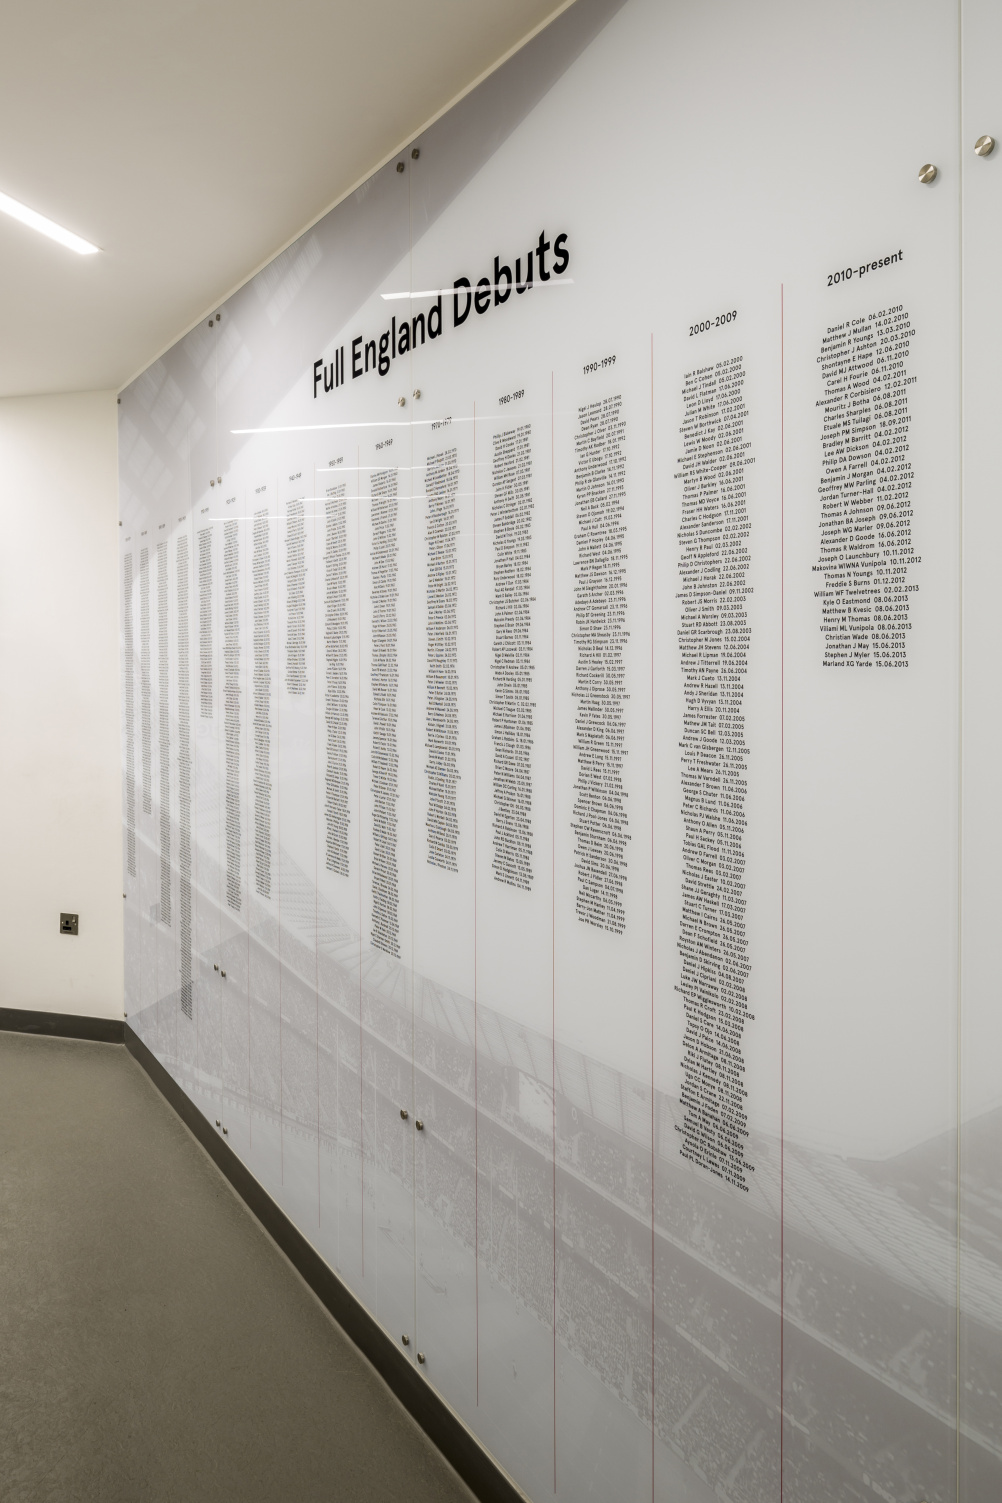 An honours board recognises every player who has turned out for England